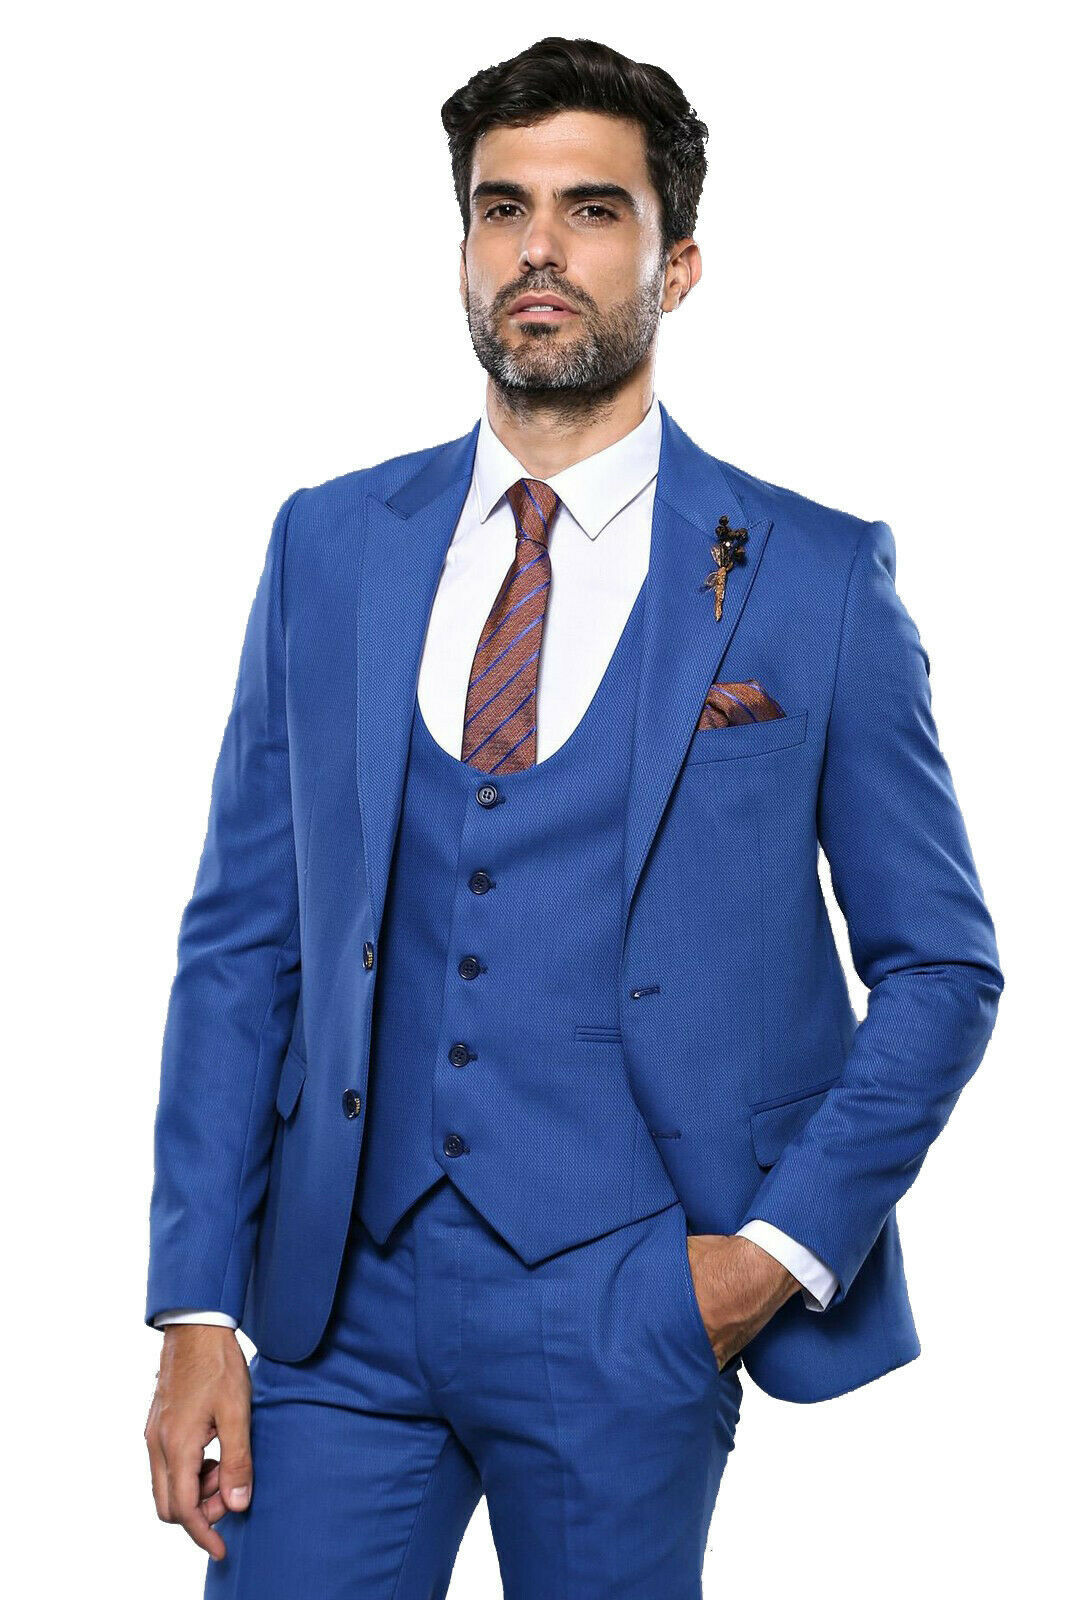 Primary image for Men Three Piece Vested Suit WESSI by J.VALINTIN Extra Slim Fit JV8 Light blue